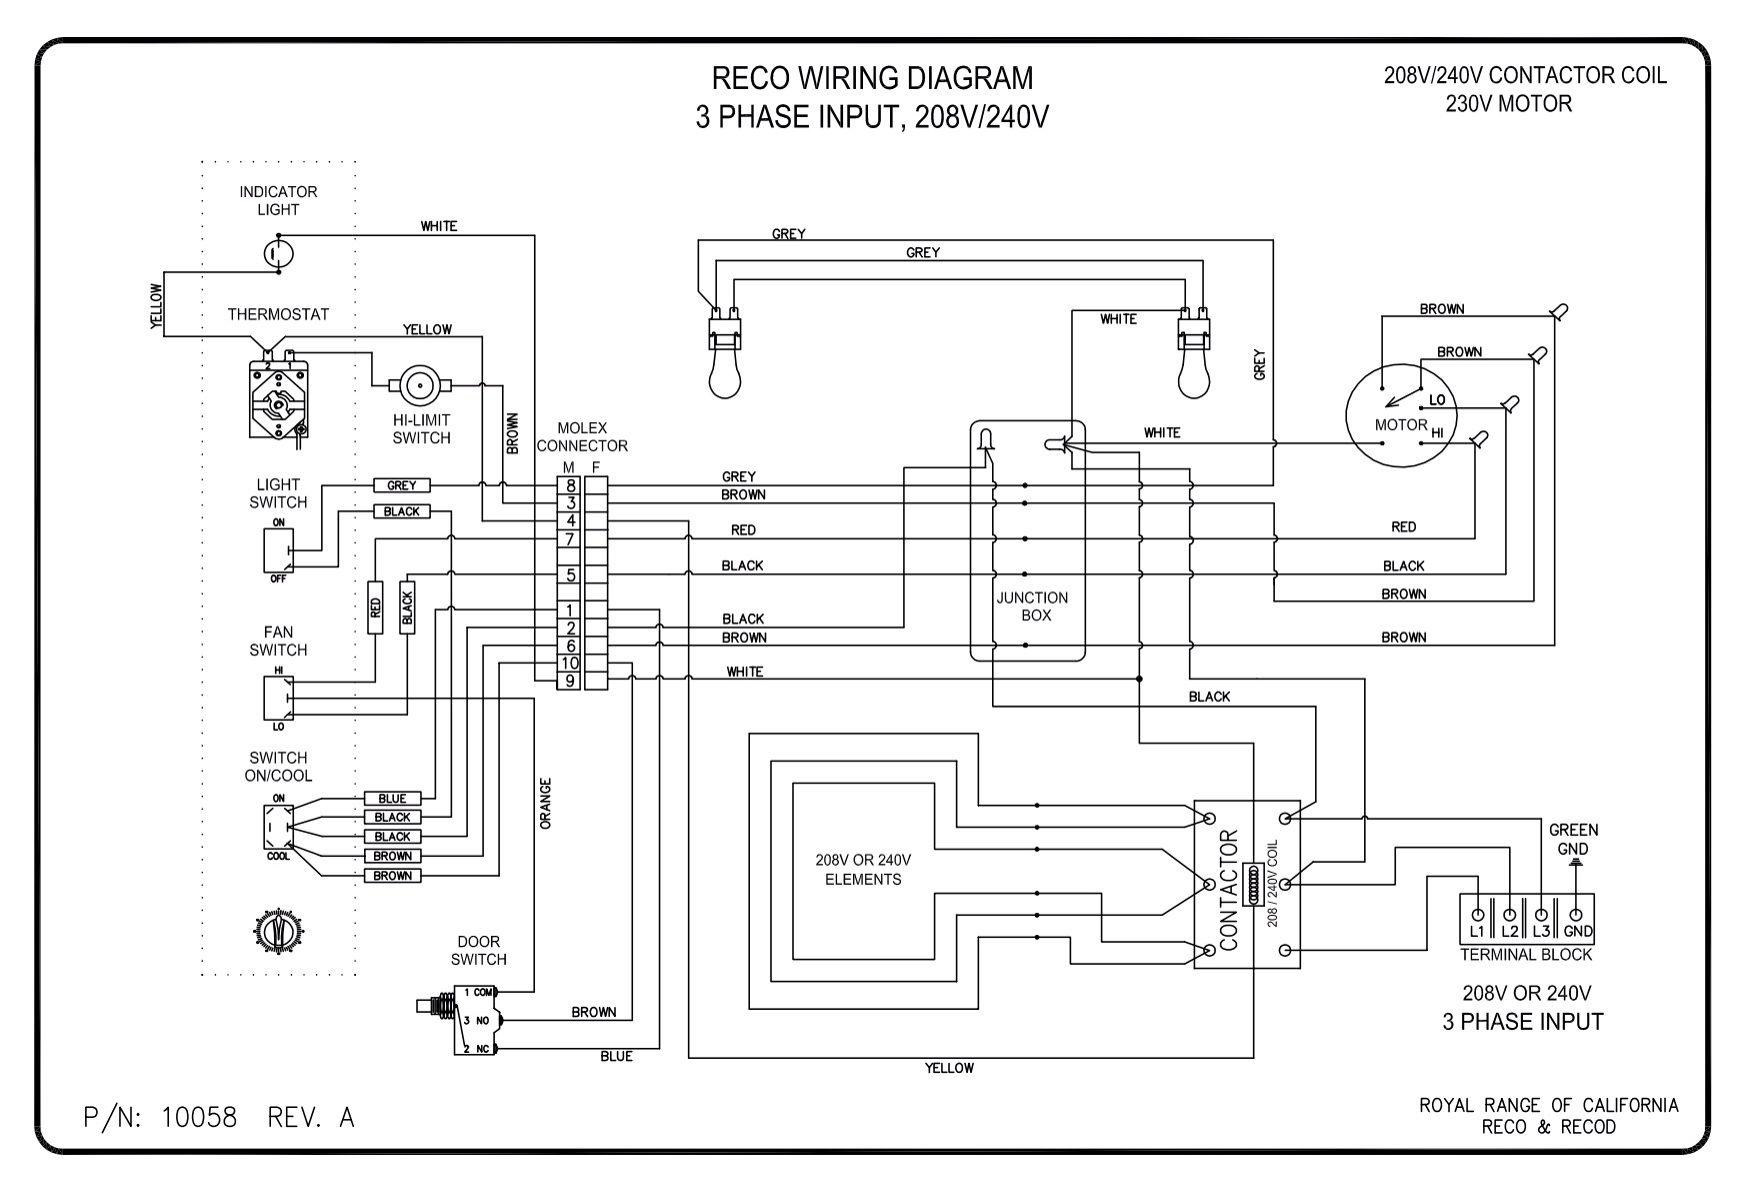 240v single phase wiring diagram 1994 cal spa diagrams royal range of california